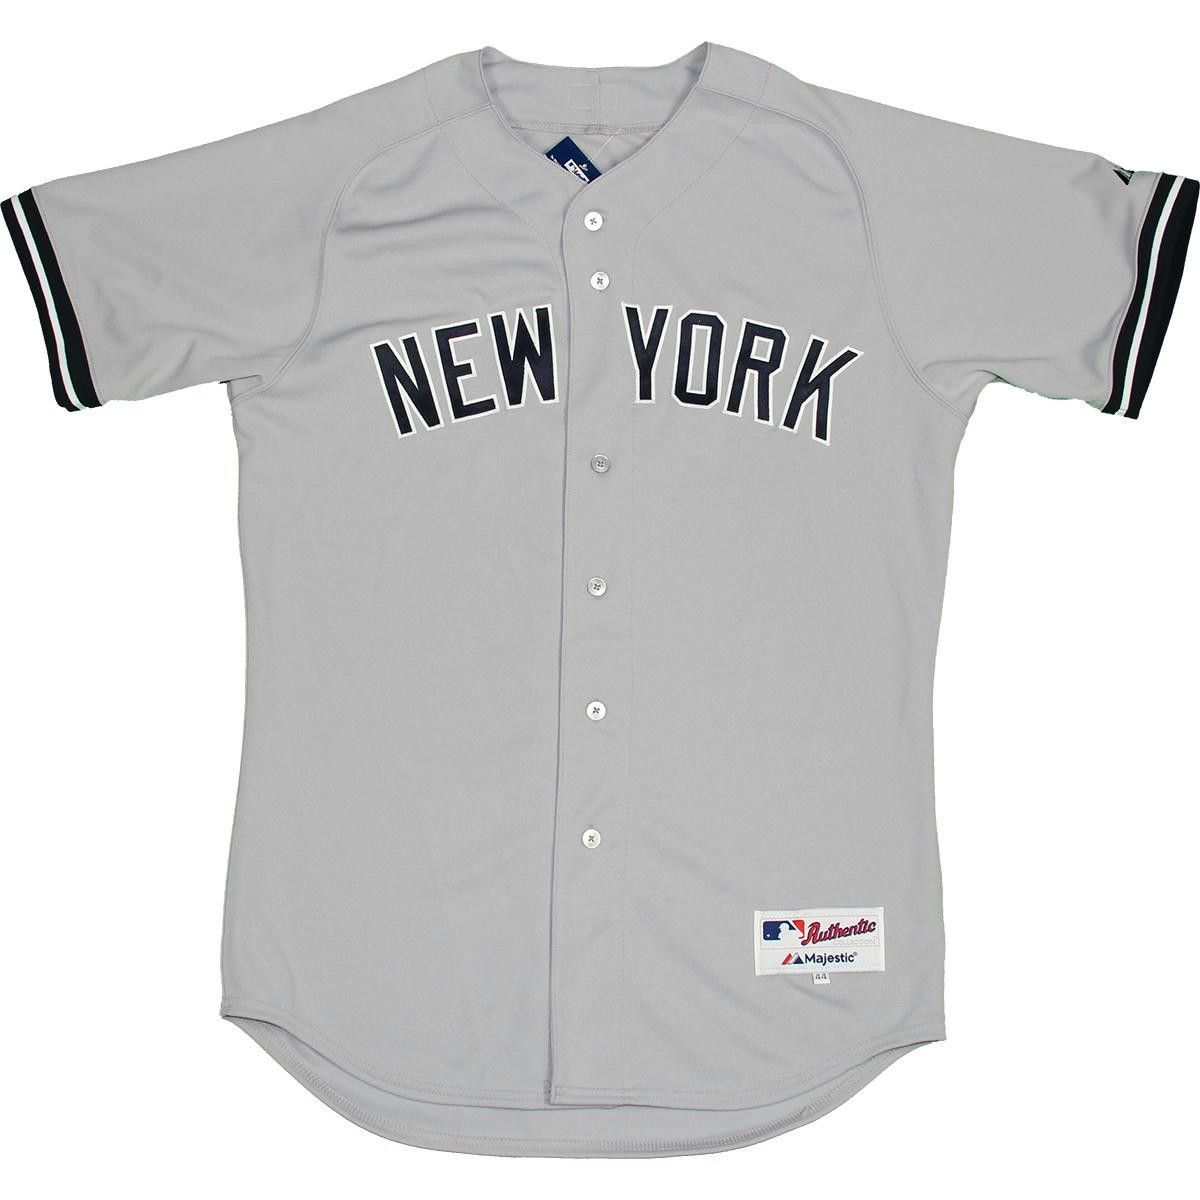 Majestic Authentic New York Yankees Gray Away Jersey L Bulk Size 44 Gray Away New York Yankees Jersey